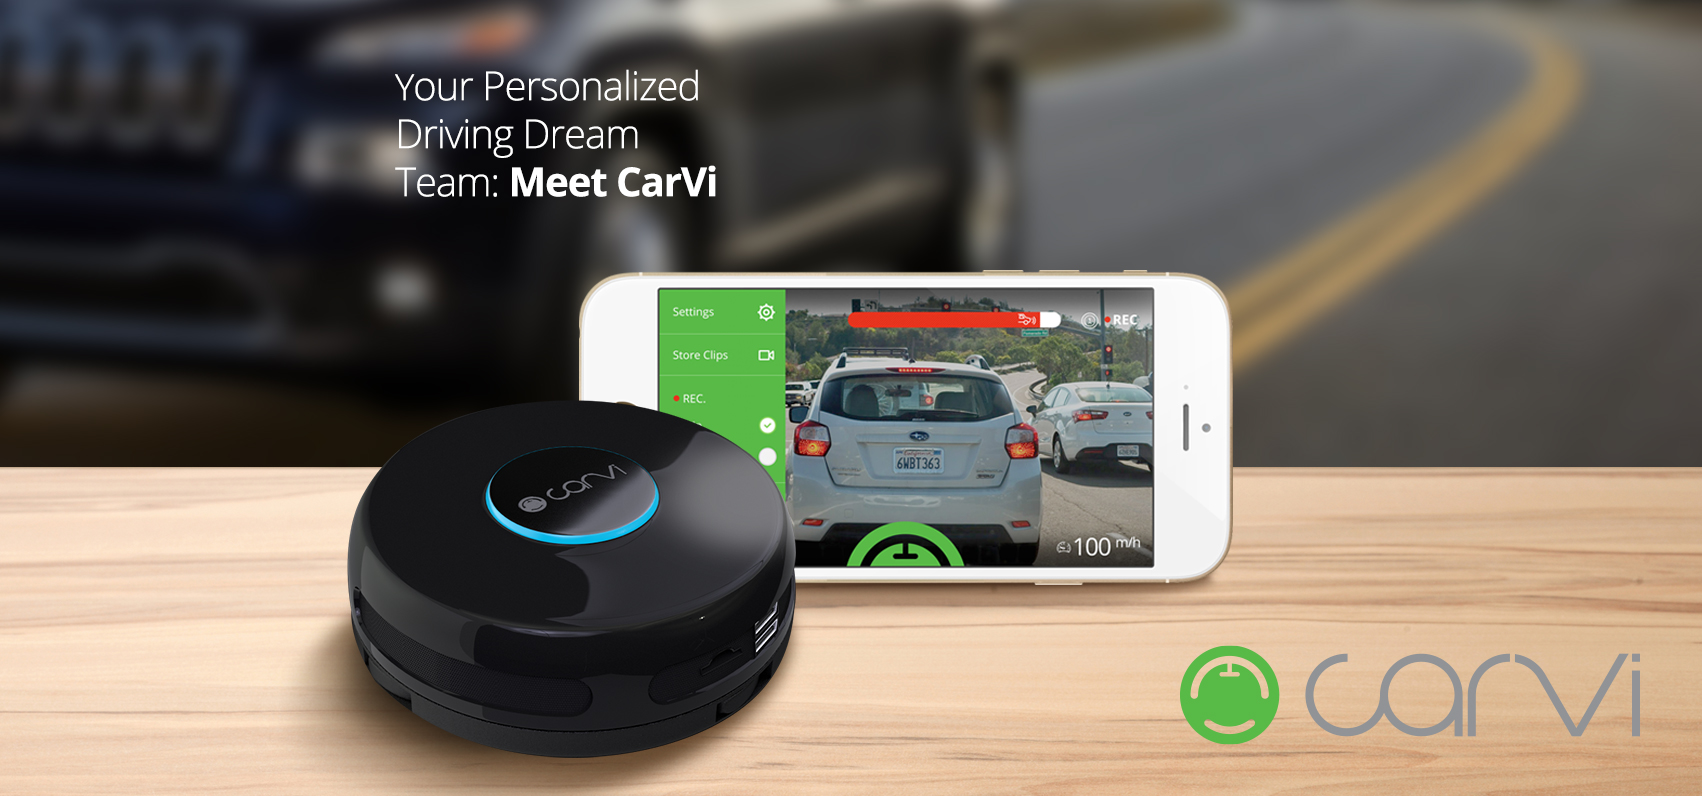 Meet Carvi Your Personalized Driving Dream Team